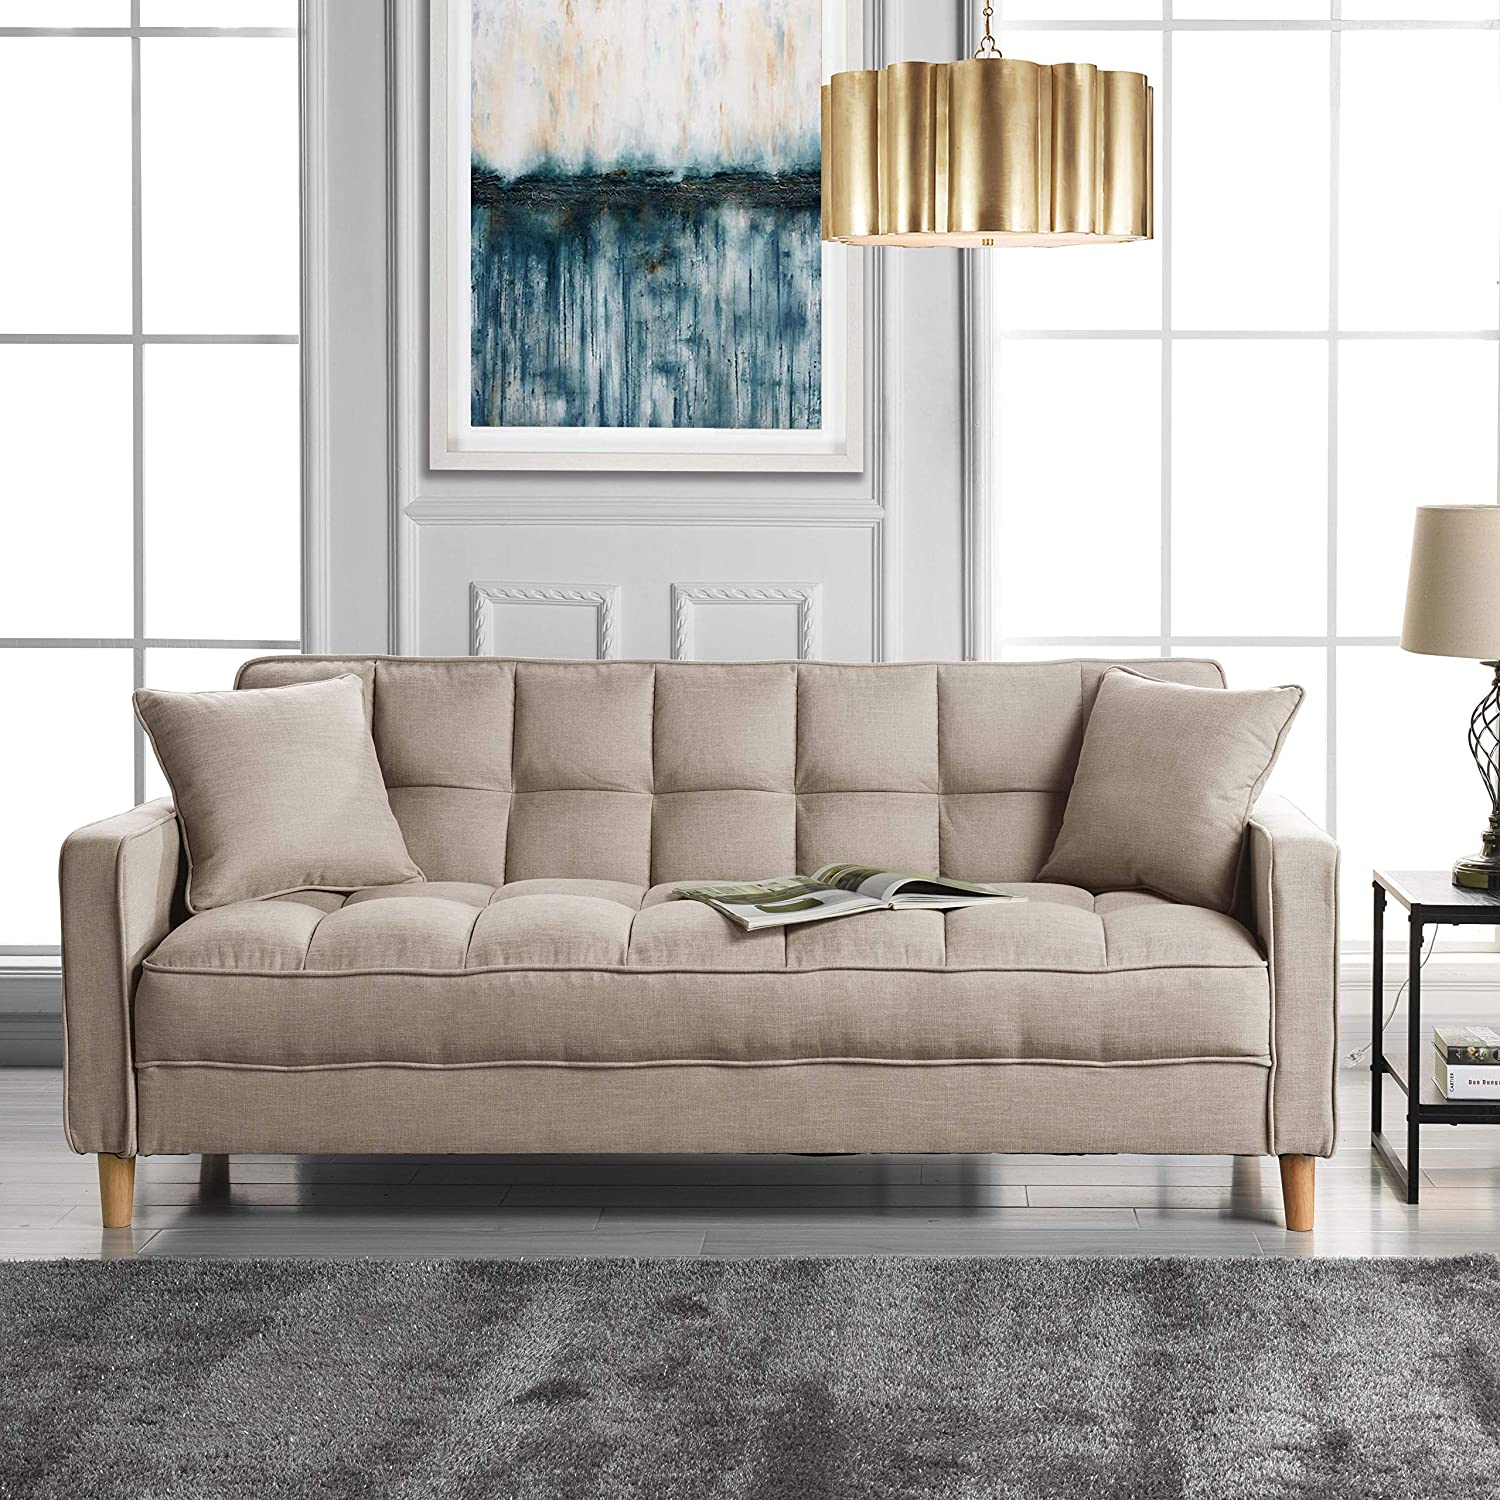 Amazon com modern linen fabric tufted small space living room sofa couch beige kitchen dining